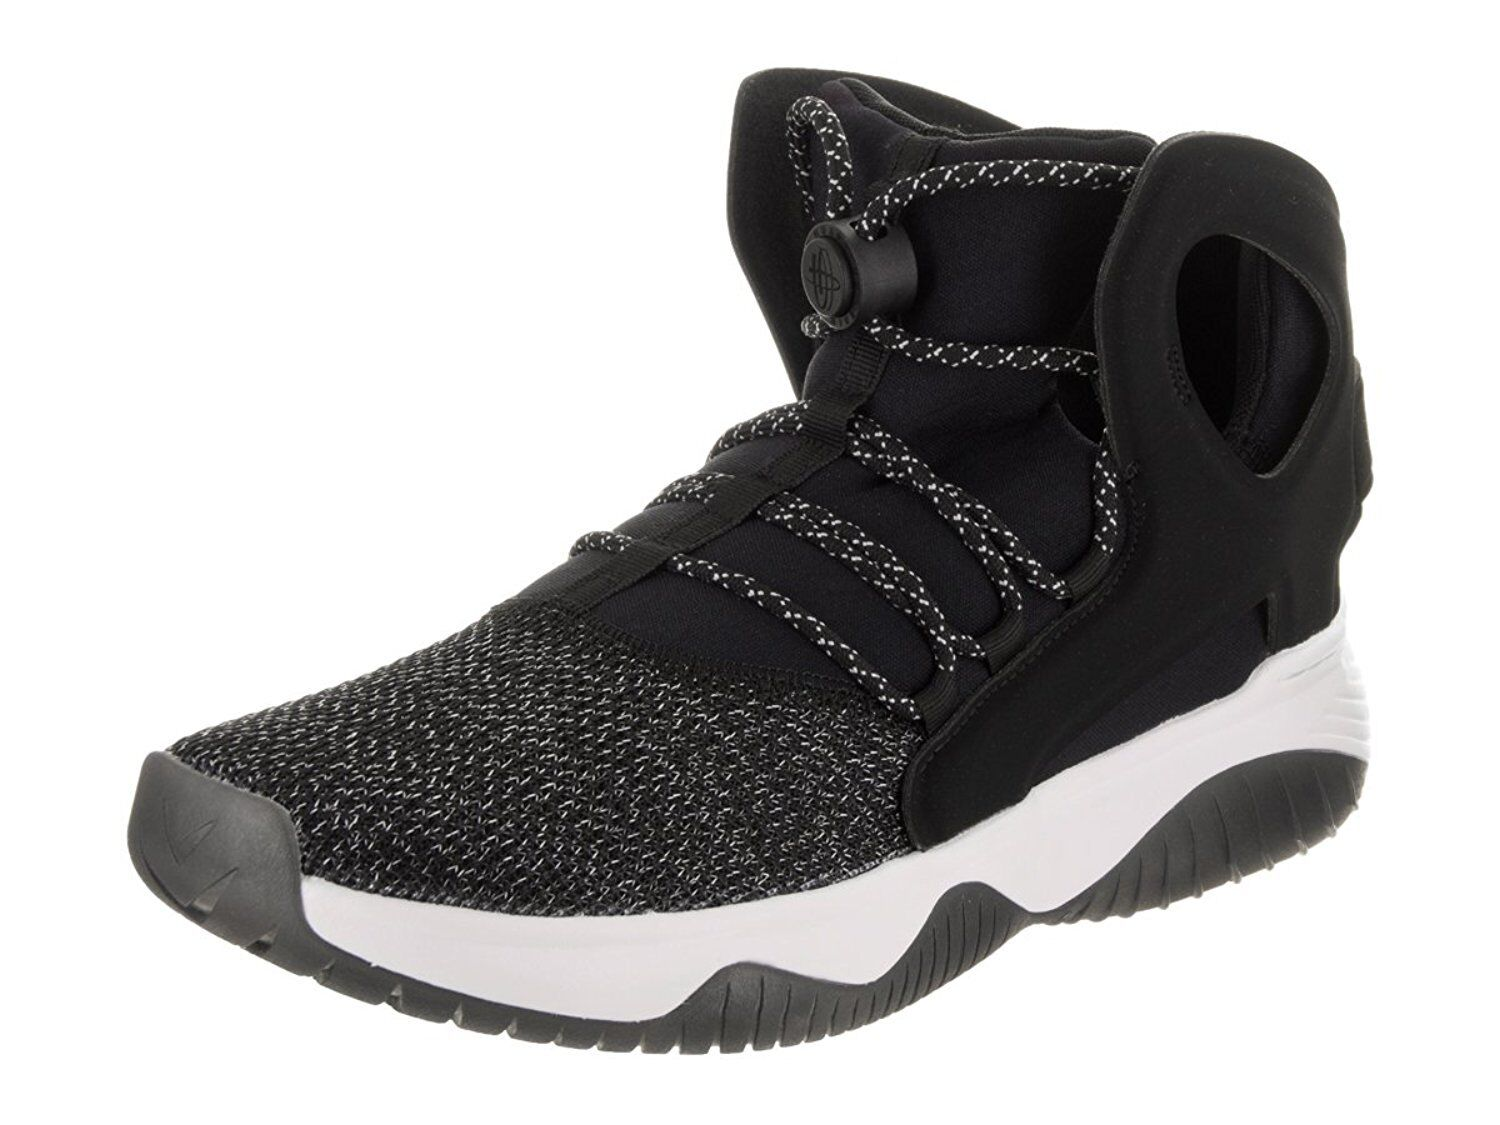 Nike Air Flight Huarache Ultra Black/Black-White-Volt Price reduction Seasonal clearance sale